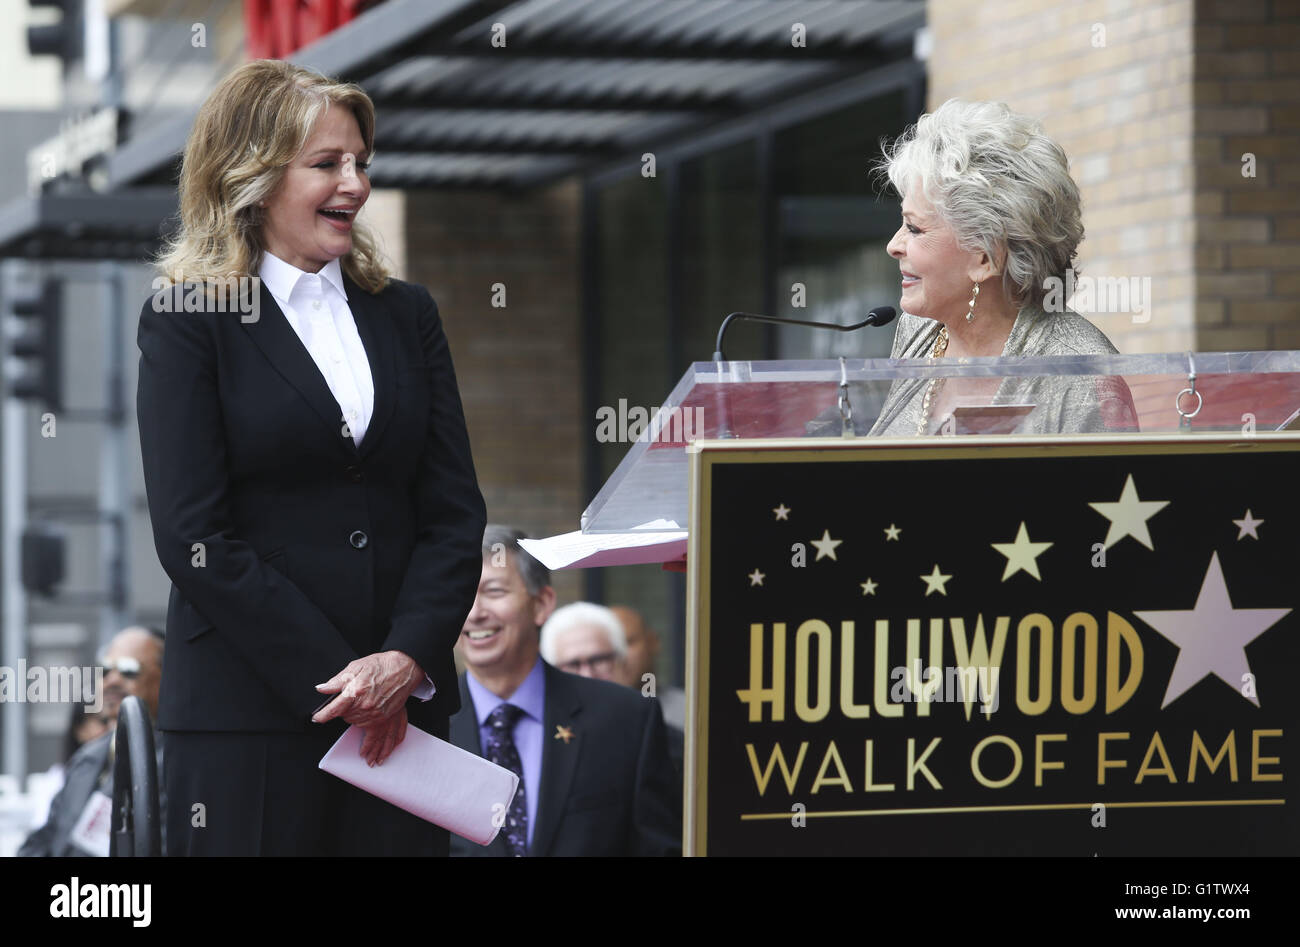 Los Angeles, California, USA. 19th May, 2016. Susan Seaforth Hayes, right, introduces actress Deidre Hall in a ceremony - Stock Image